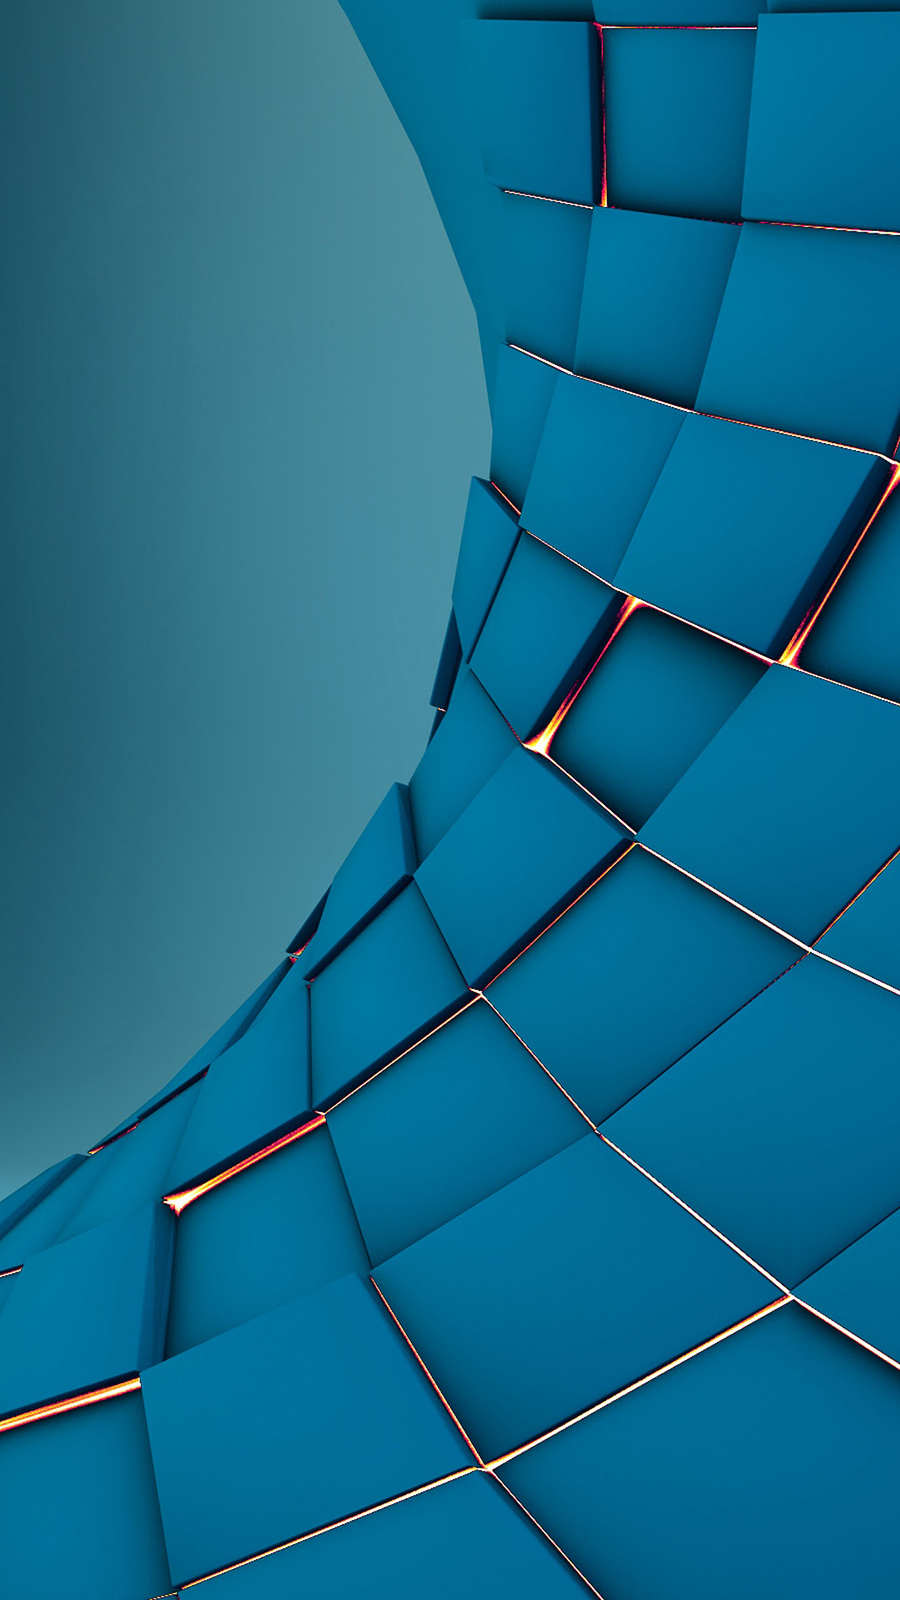 3D Squares Abstract Render Android Wallpaper